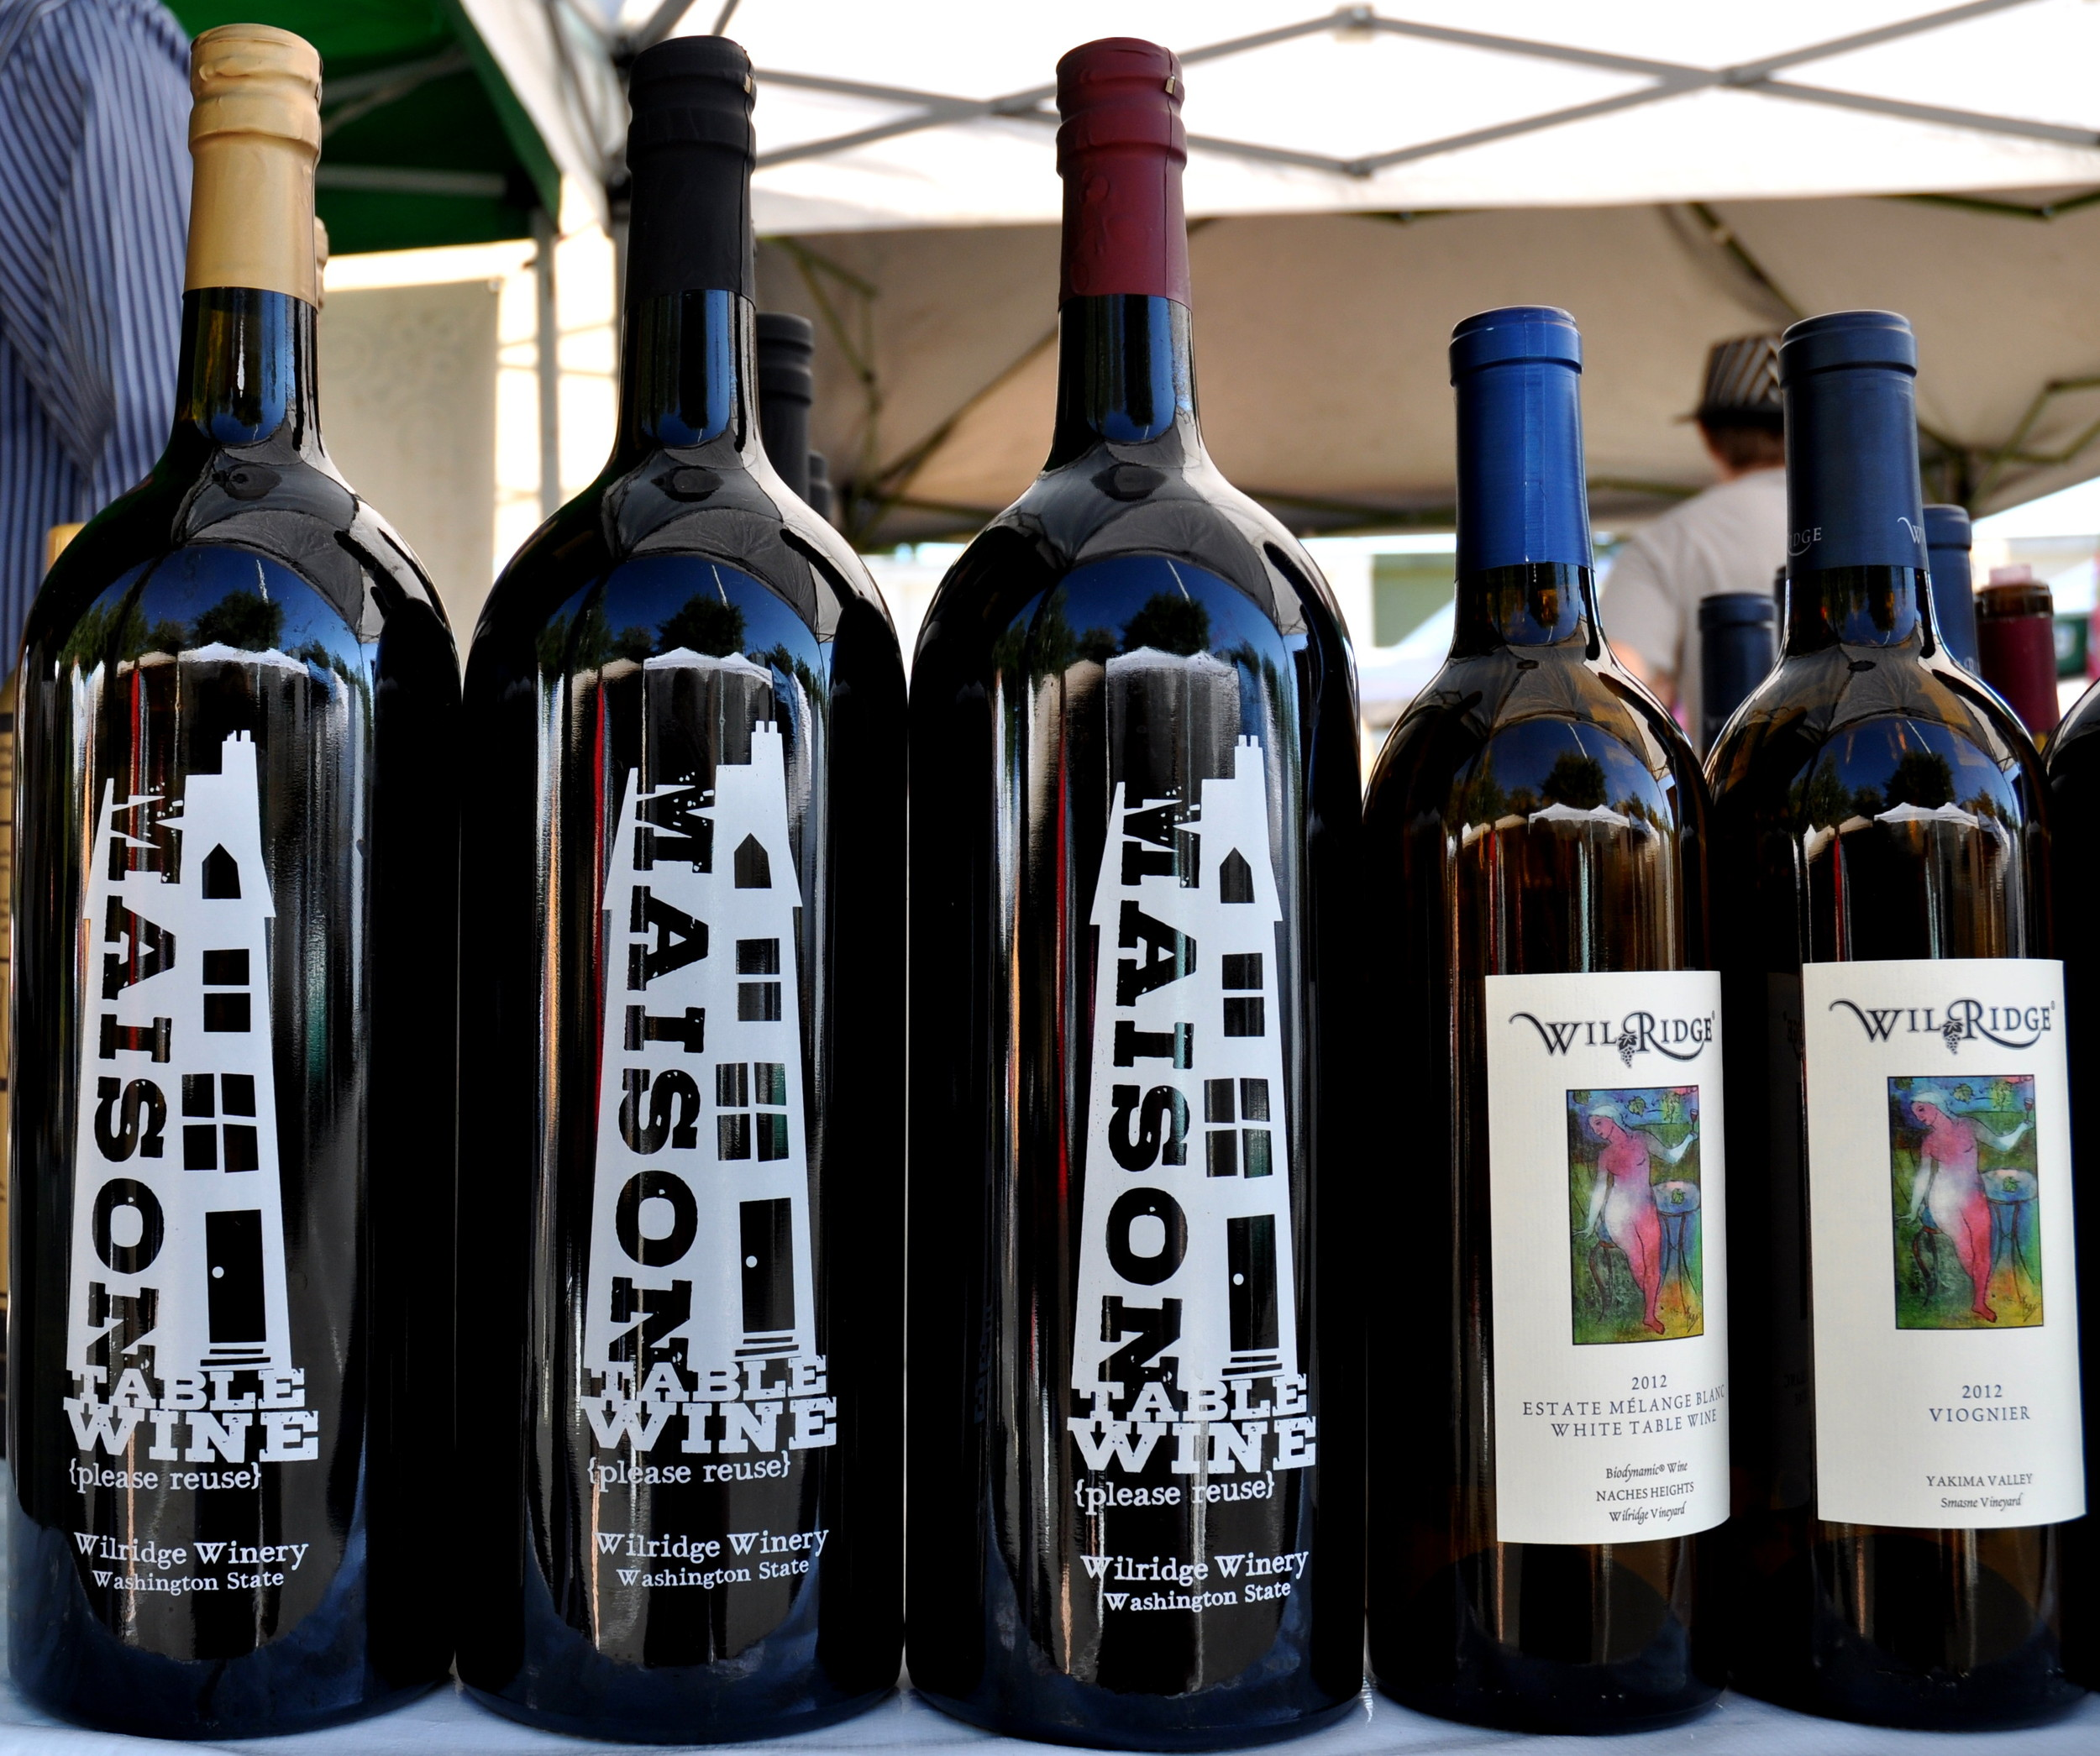 Refillable bottles (left) from Wilridge Winery at Ballard Farmers Market. Copyright Zachary D. Lyons.